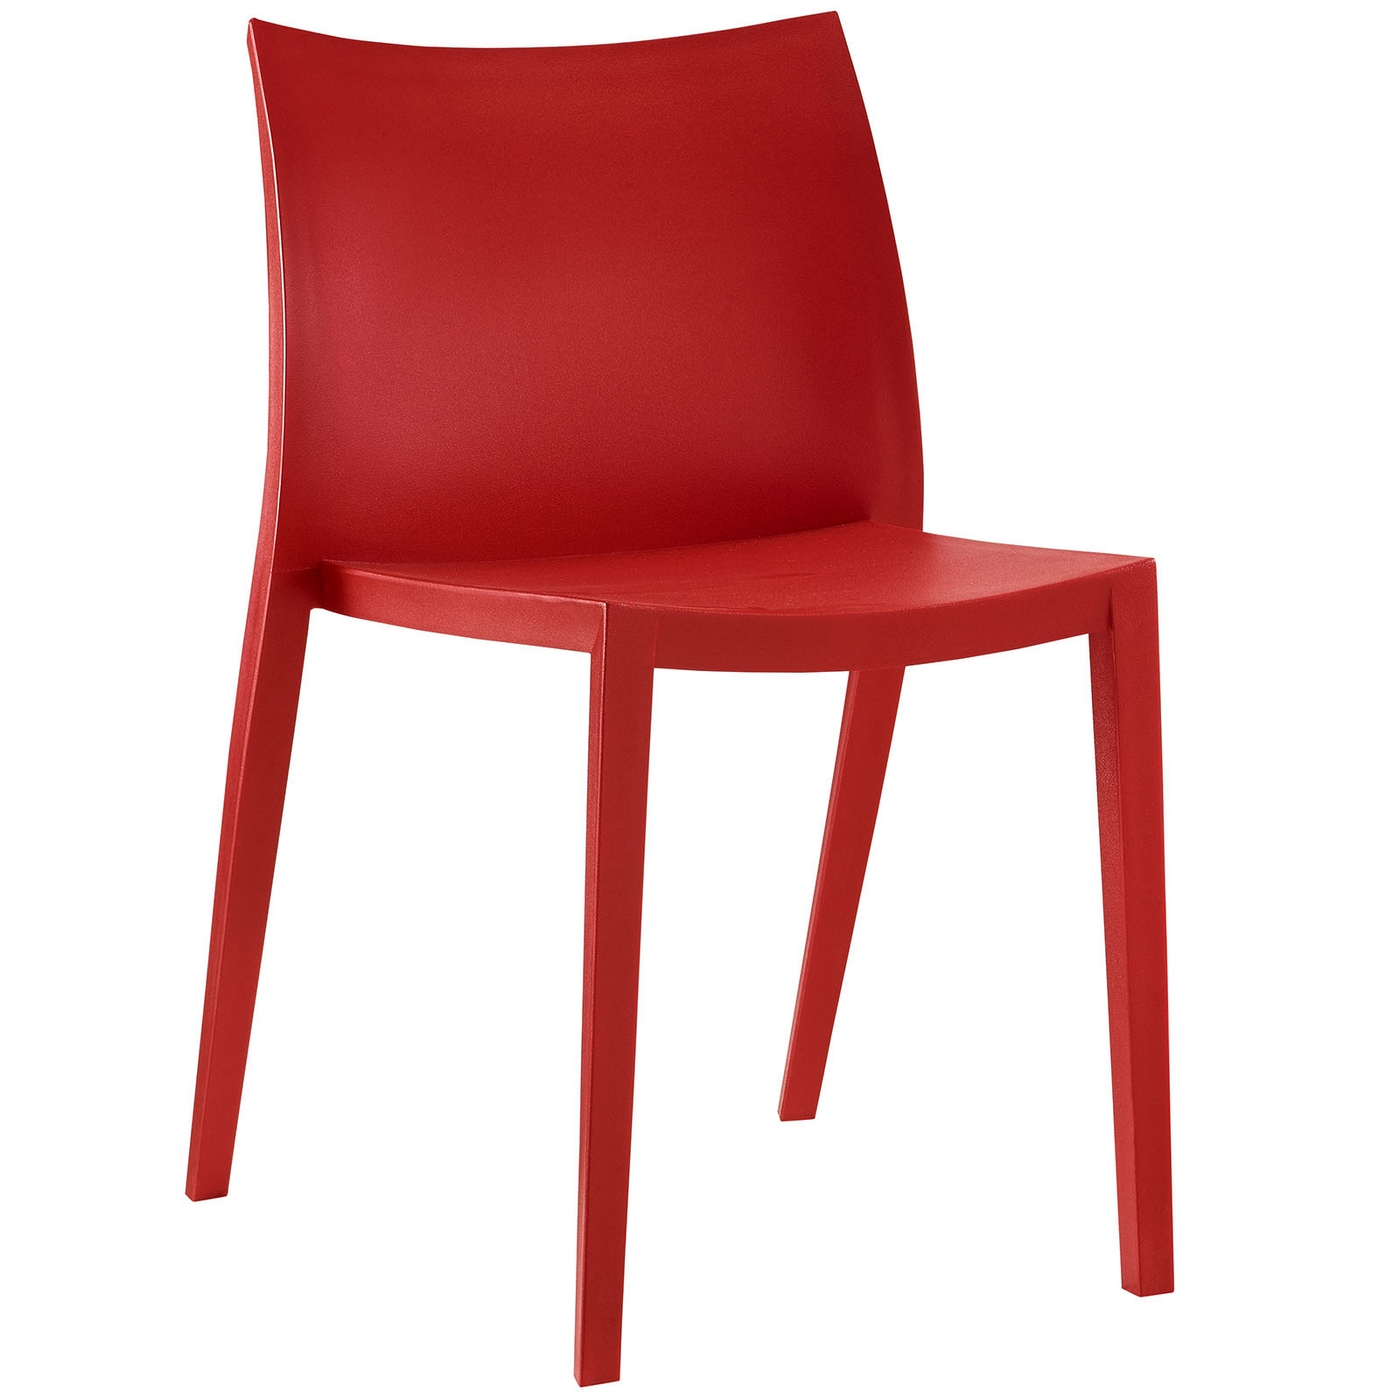 Gallant Contemporary Plastic Dining Side Chair Red